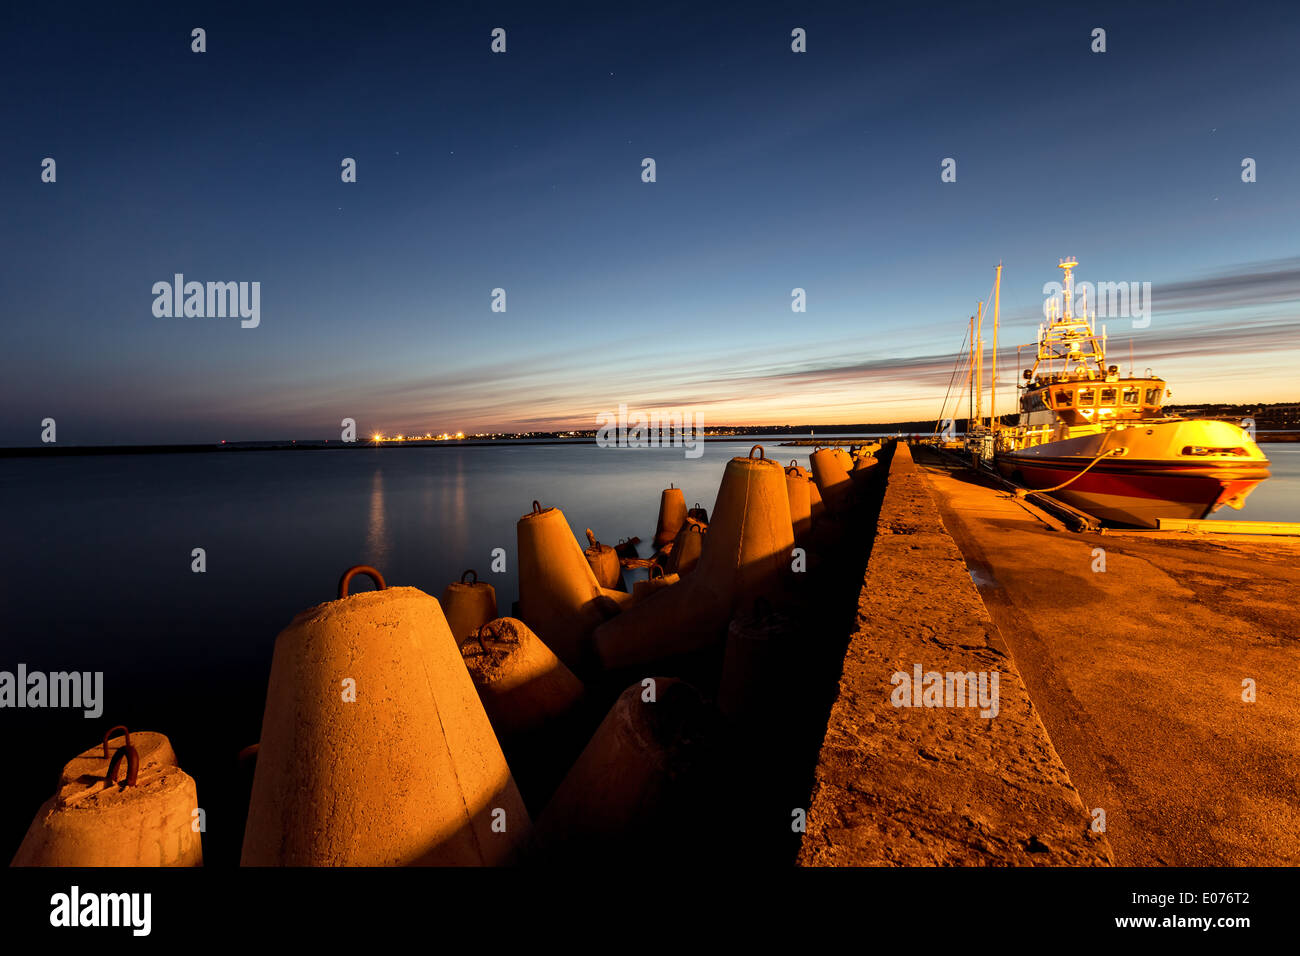 Dawn at Old City Marina harbor in Tallinn, Estonia, EU - Stock Image